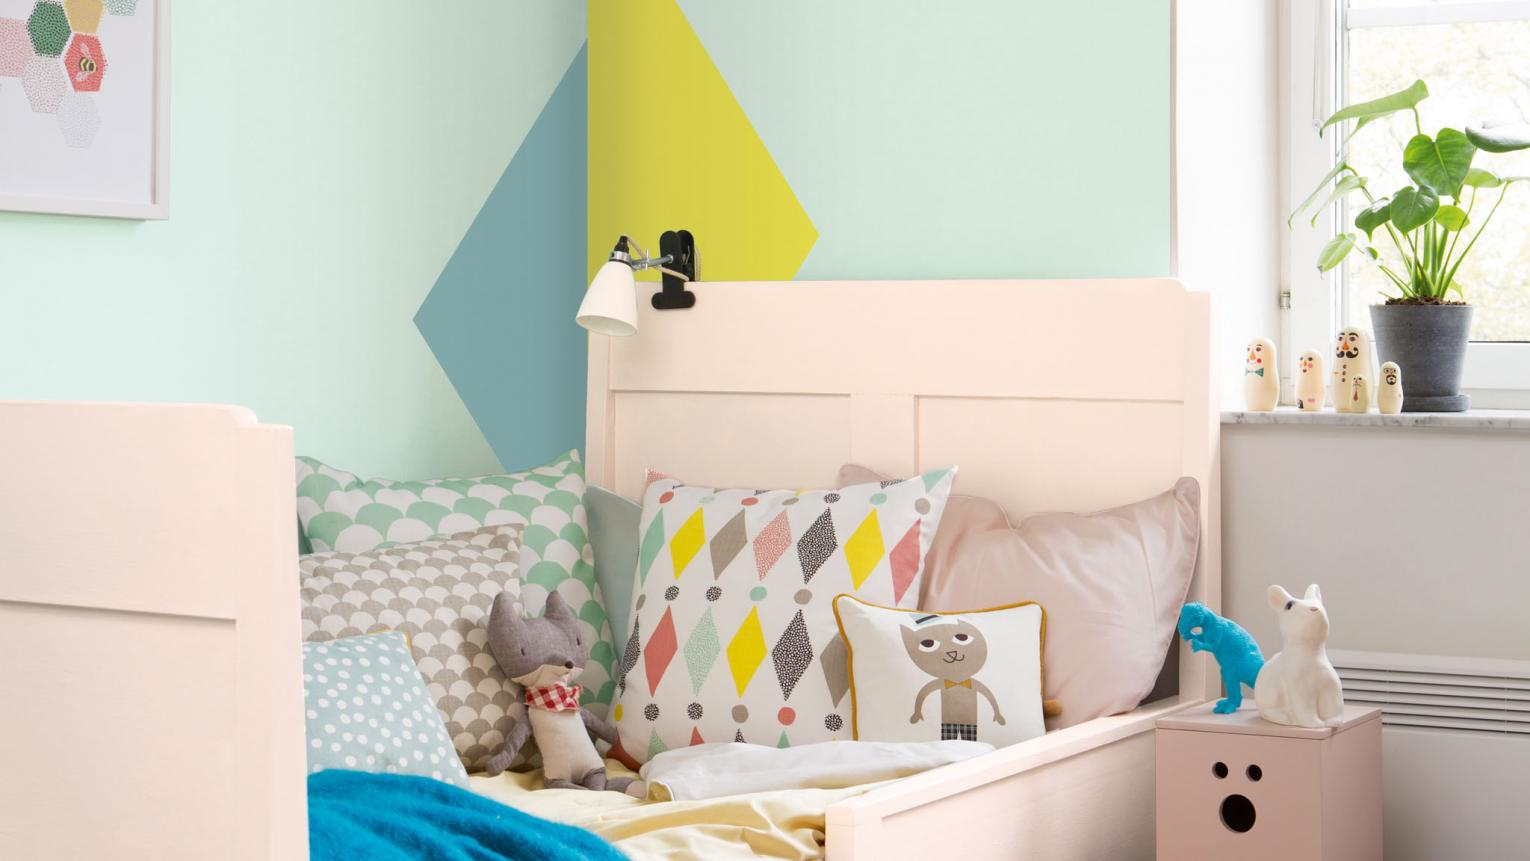 Paint geometric shapes to brighten up the corners of your child's room